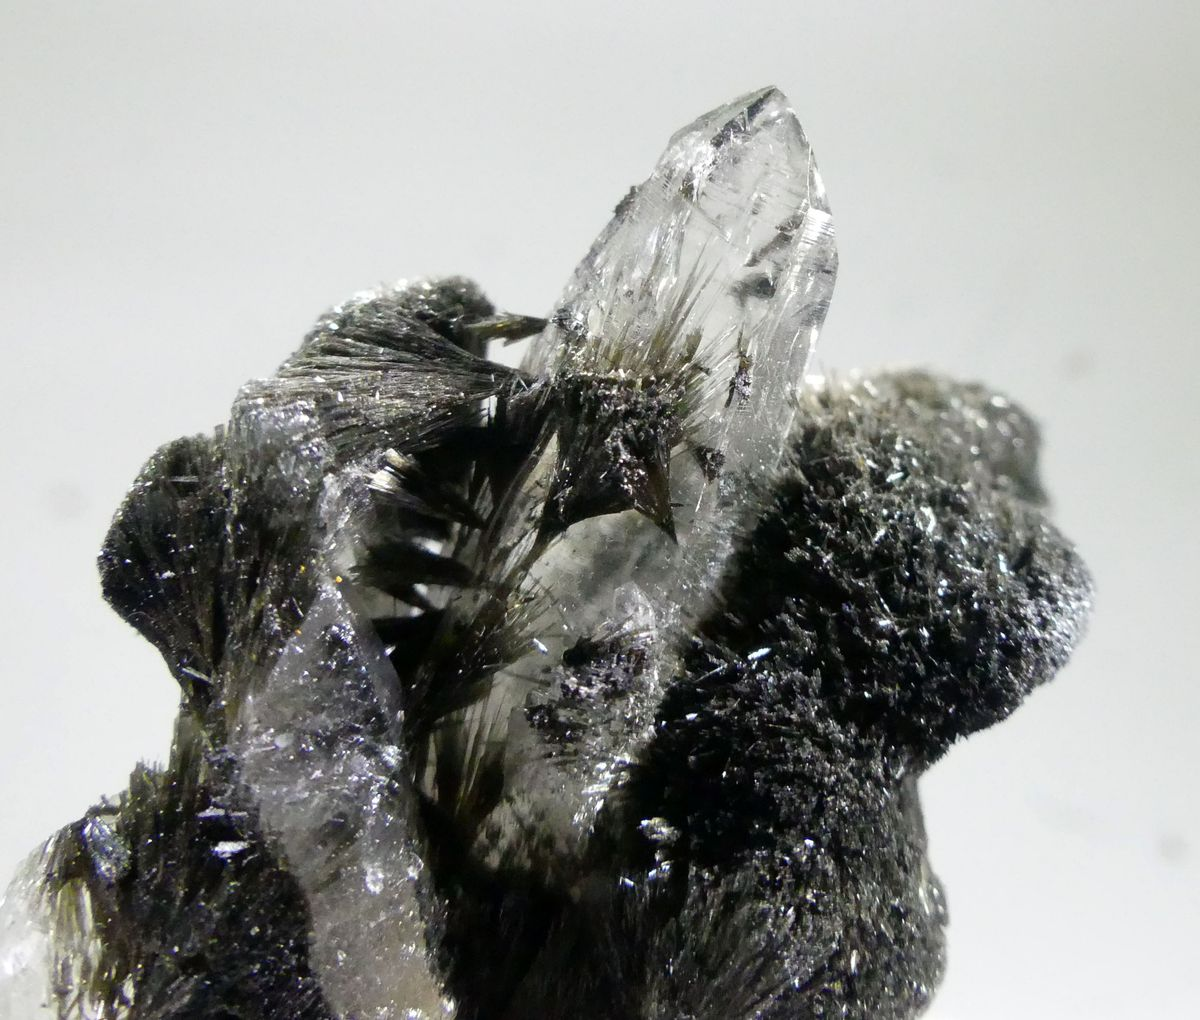 Tourmaline Var Luinaite-(OH) On Rock Crystal